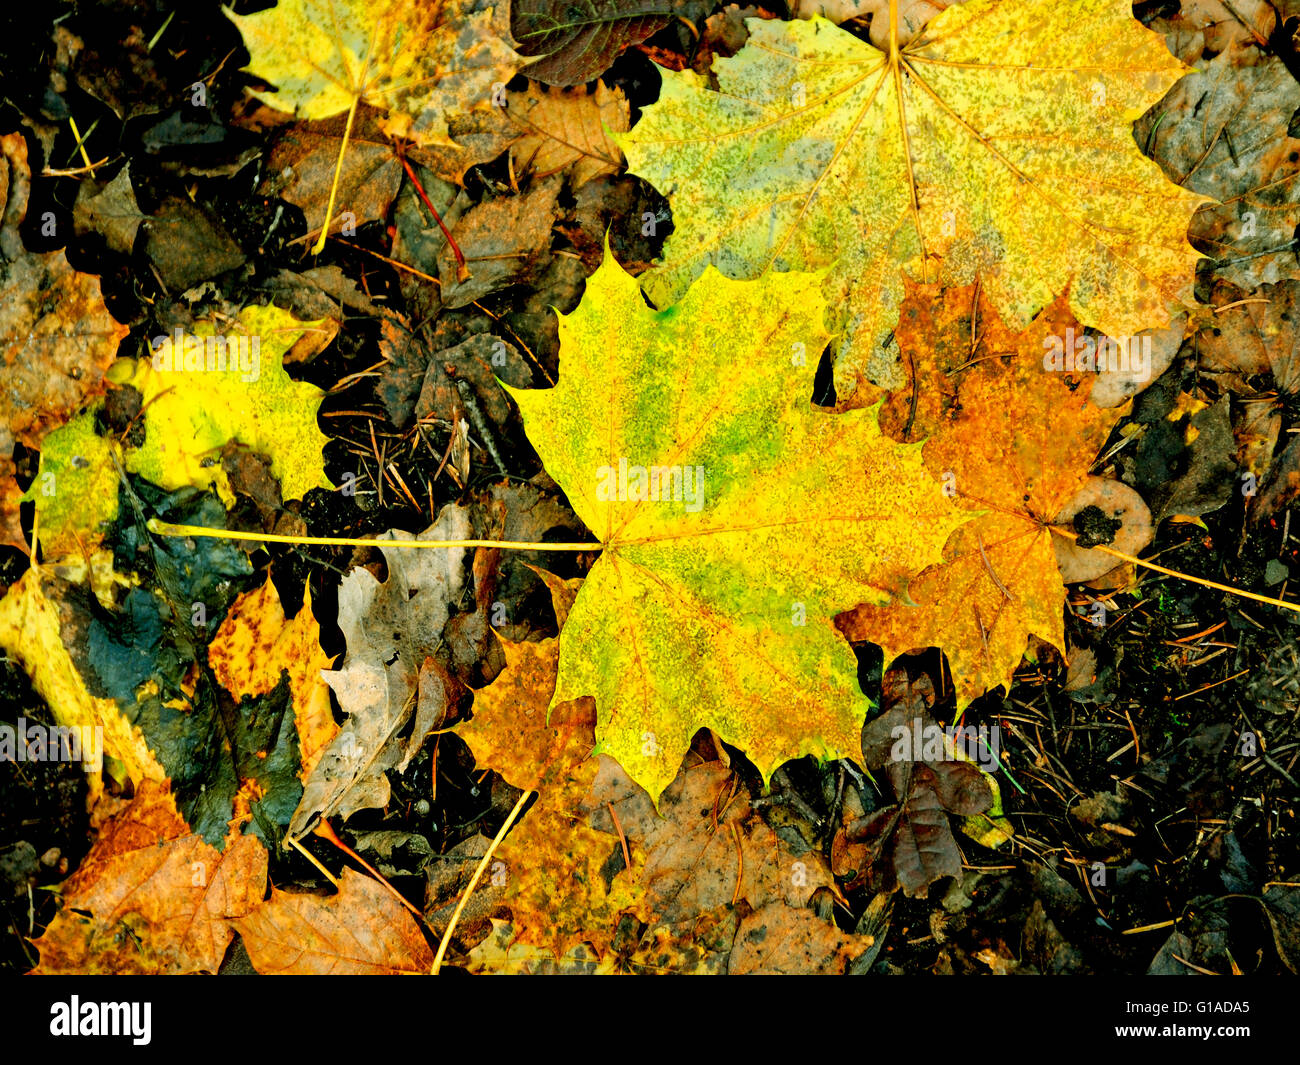 AUTUMN LEAVES ON THE WOODLAND FLOOR - Stock Image